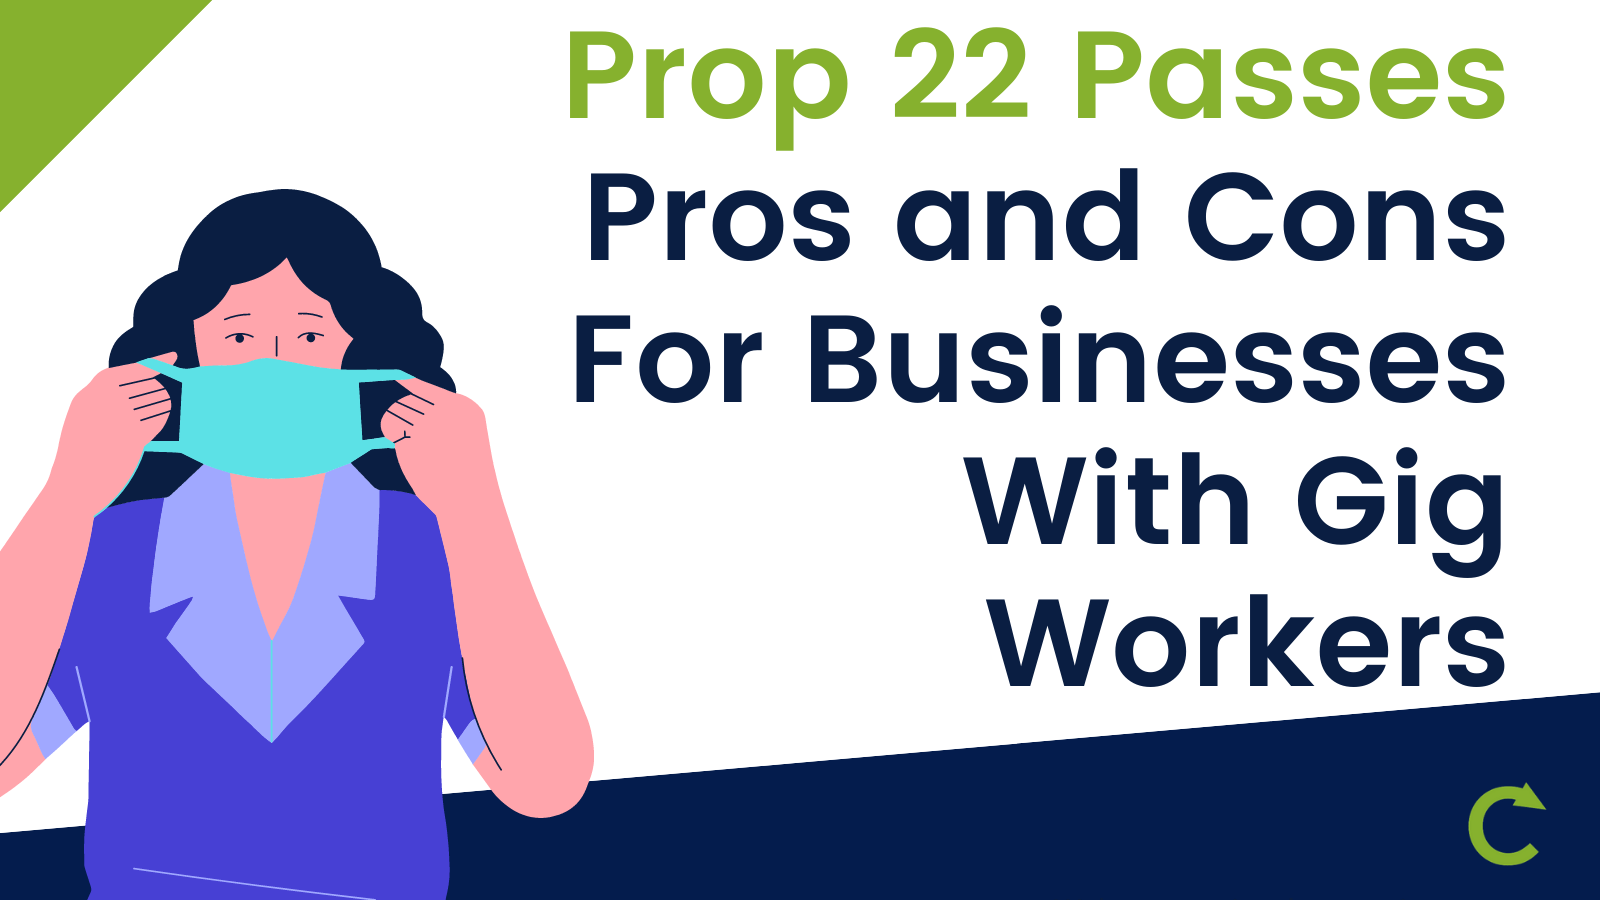 Prop 22 Passes, Pros and Cons For Businesses With Gig Workers